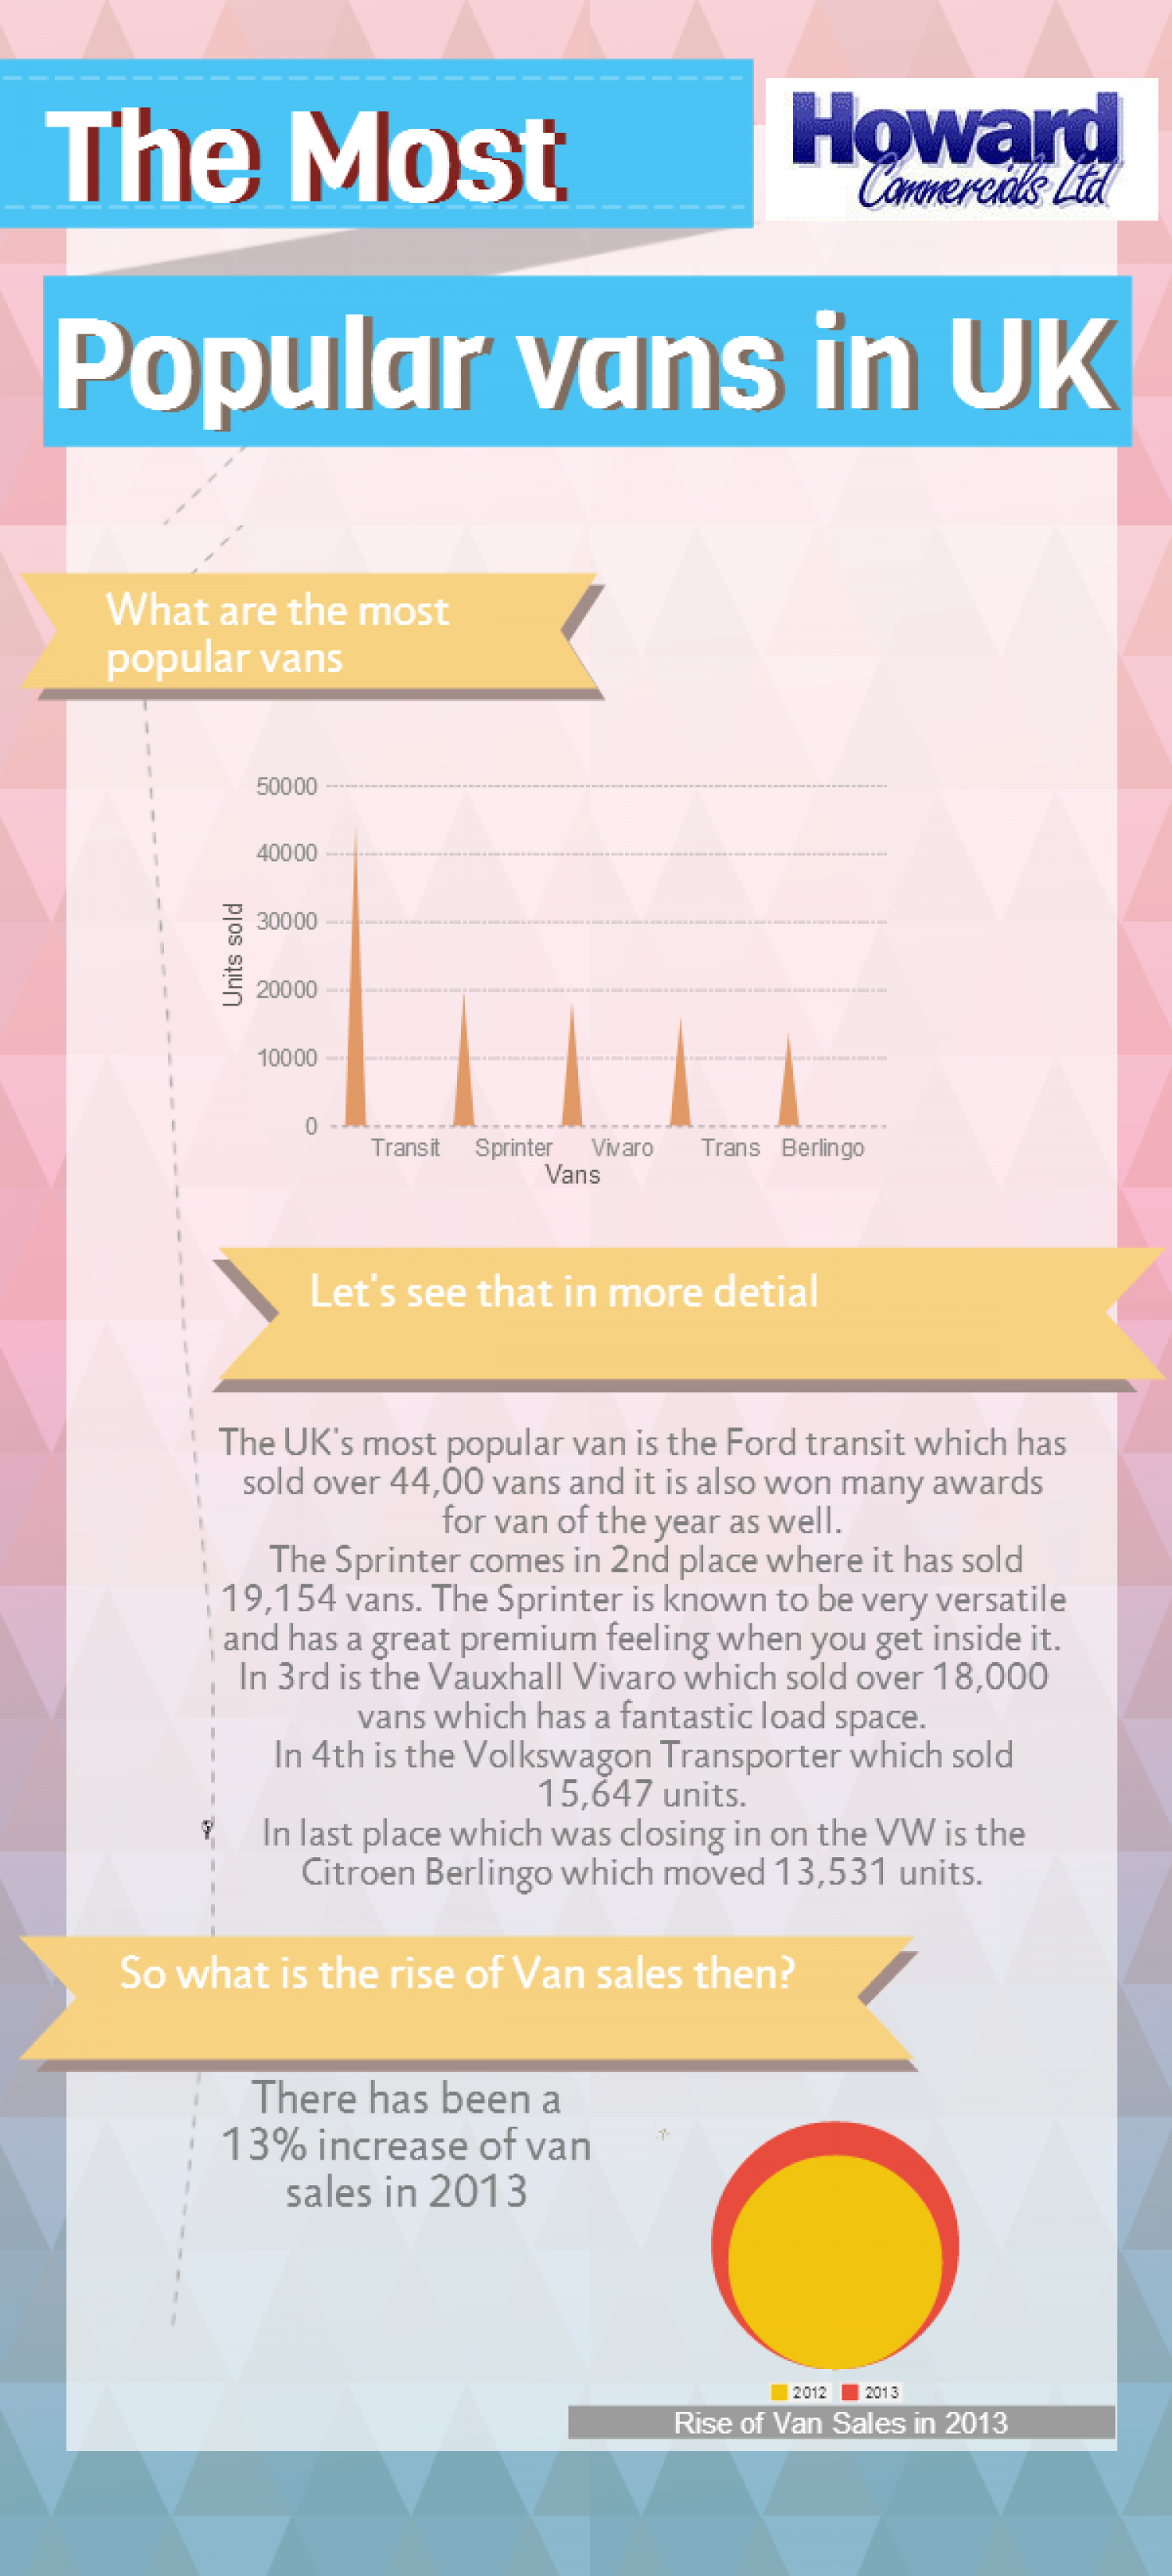 The Most Popular Vans in UK Infographic